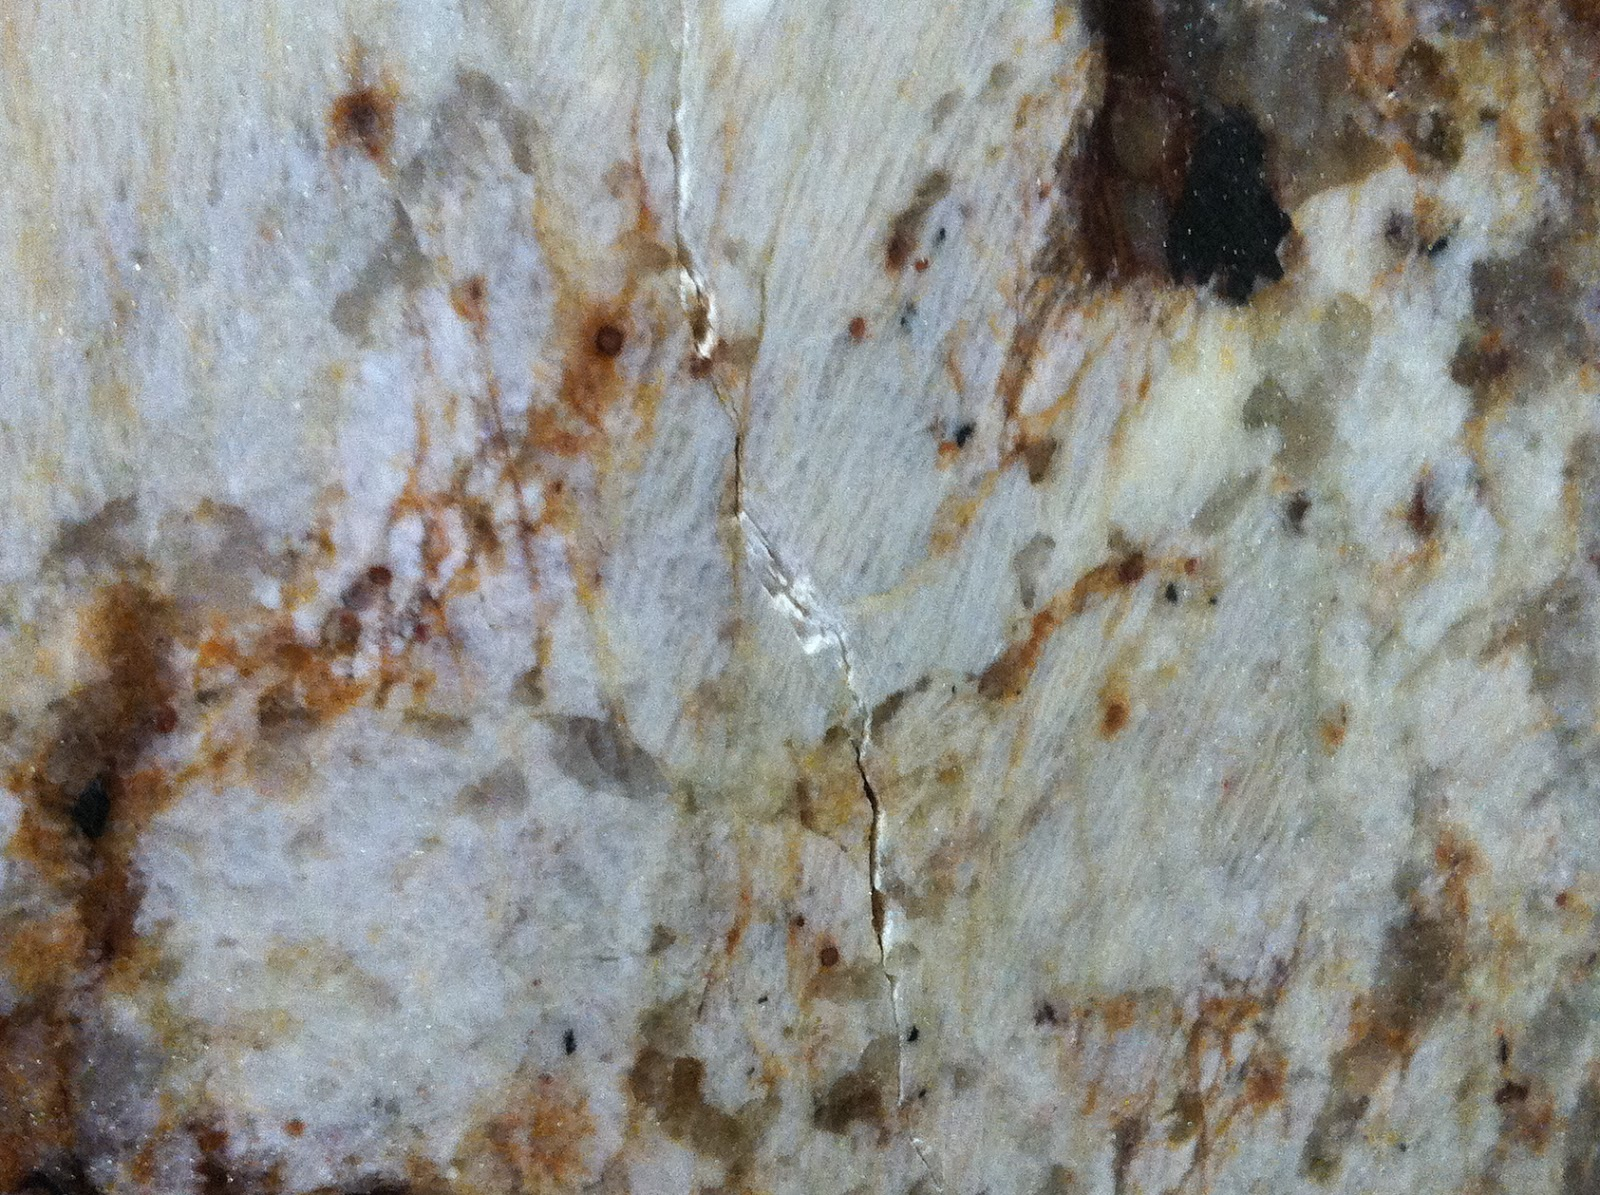 Crack Going Against Grain Of Granite